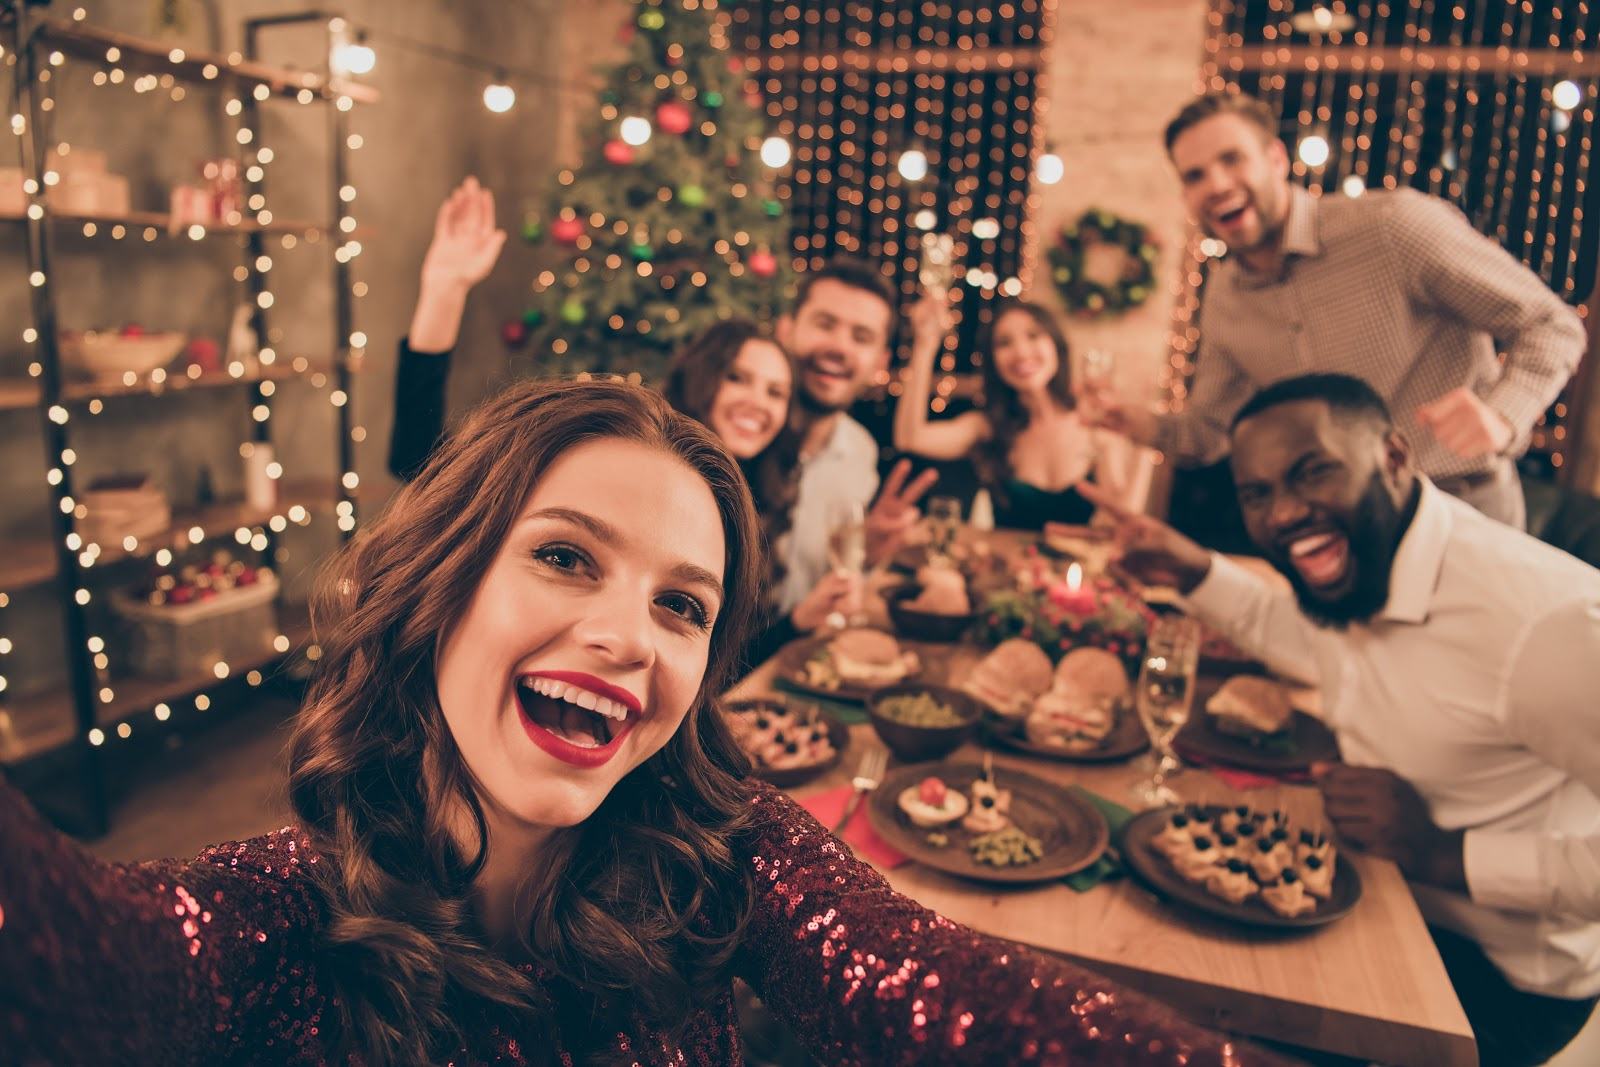 Christmas party food ideas: Guests take a selfie at a Christmas dinner party